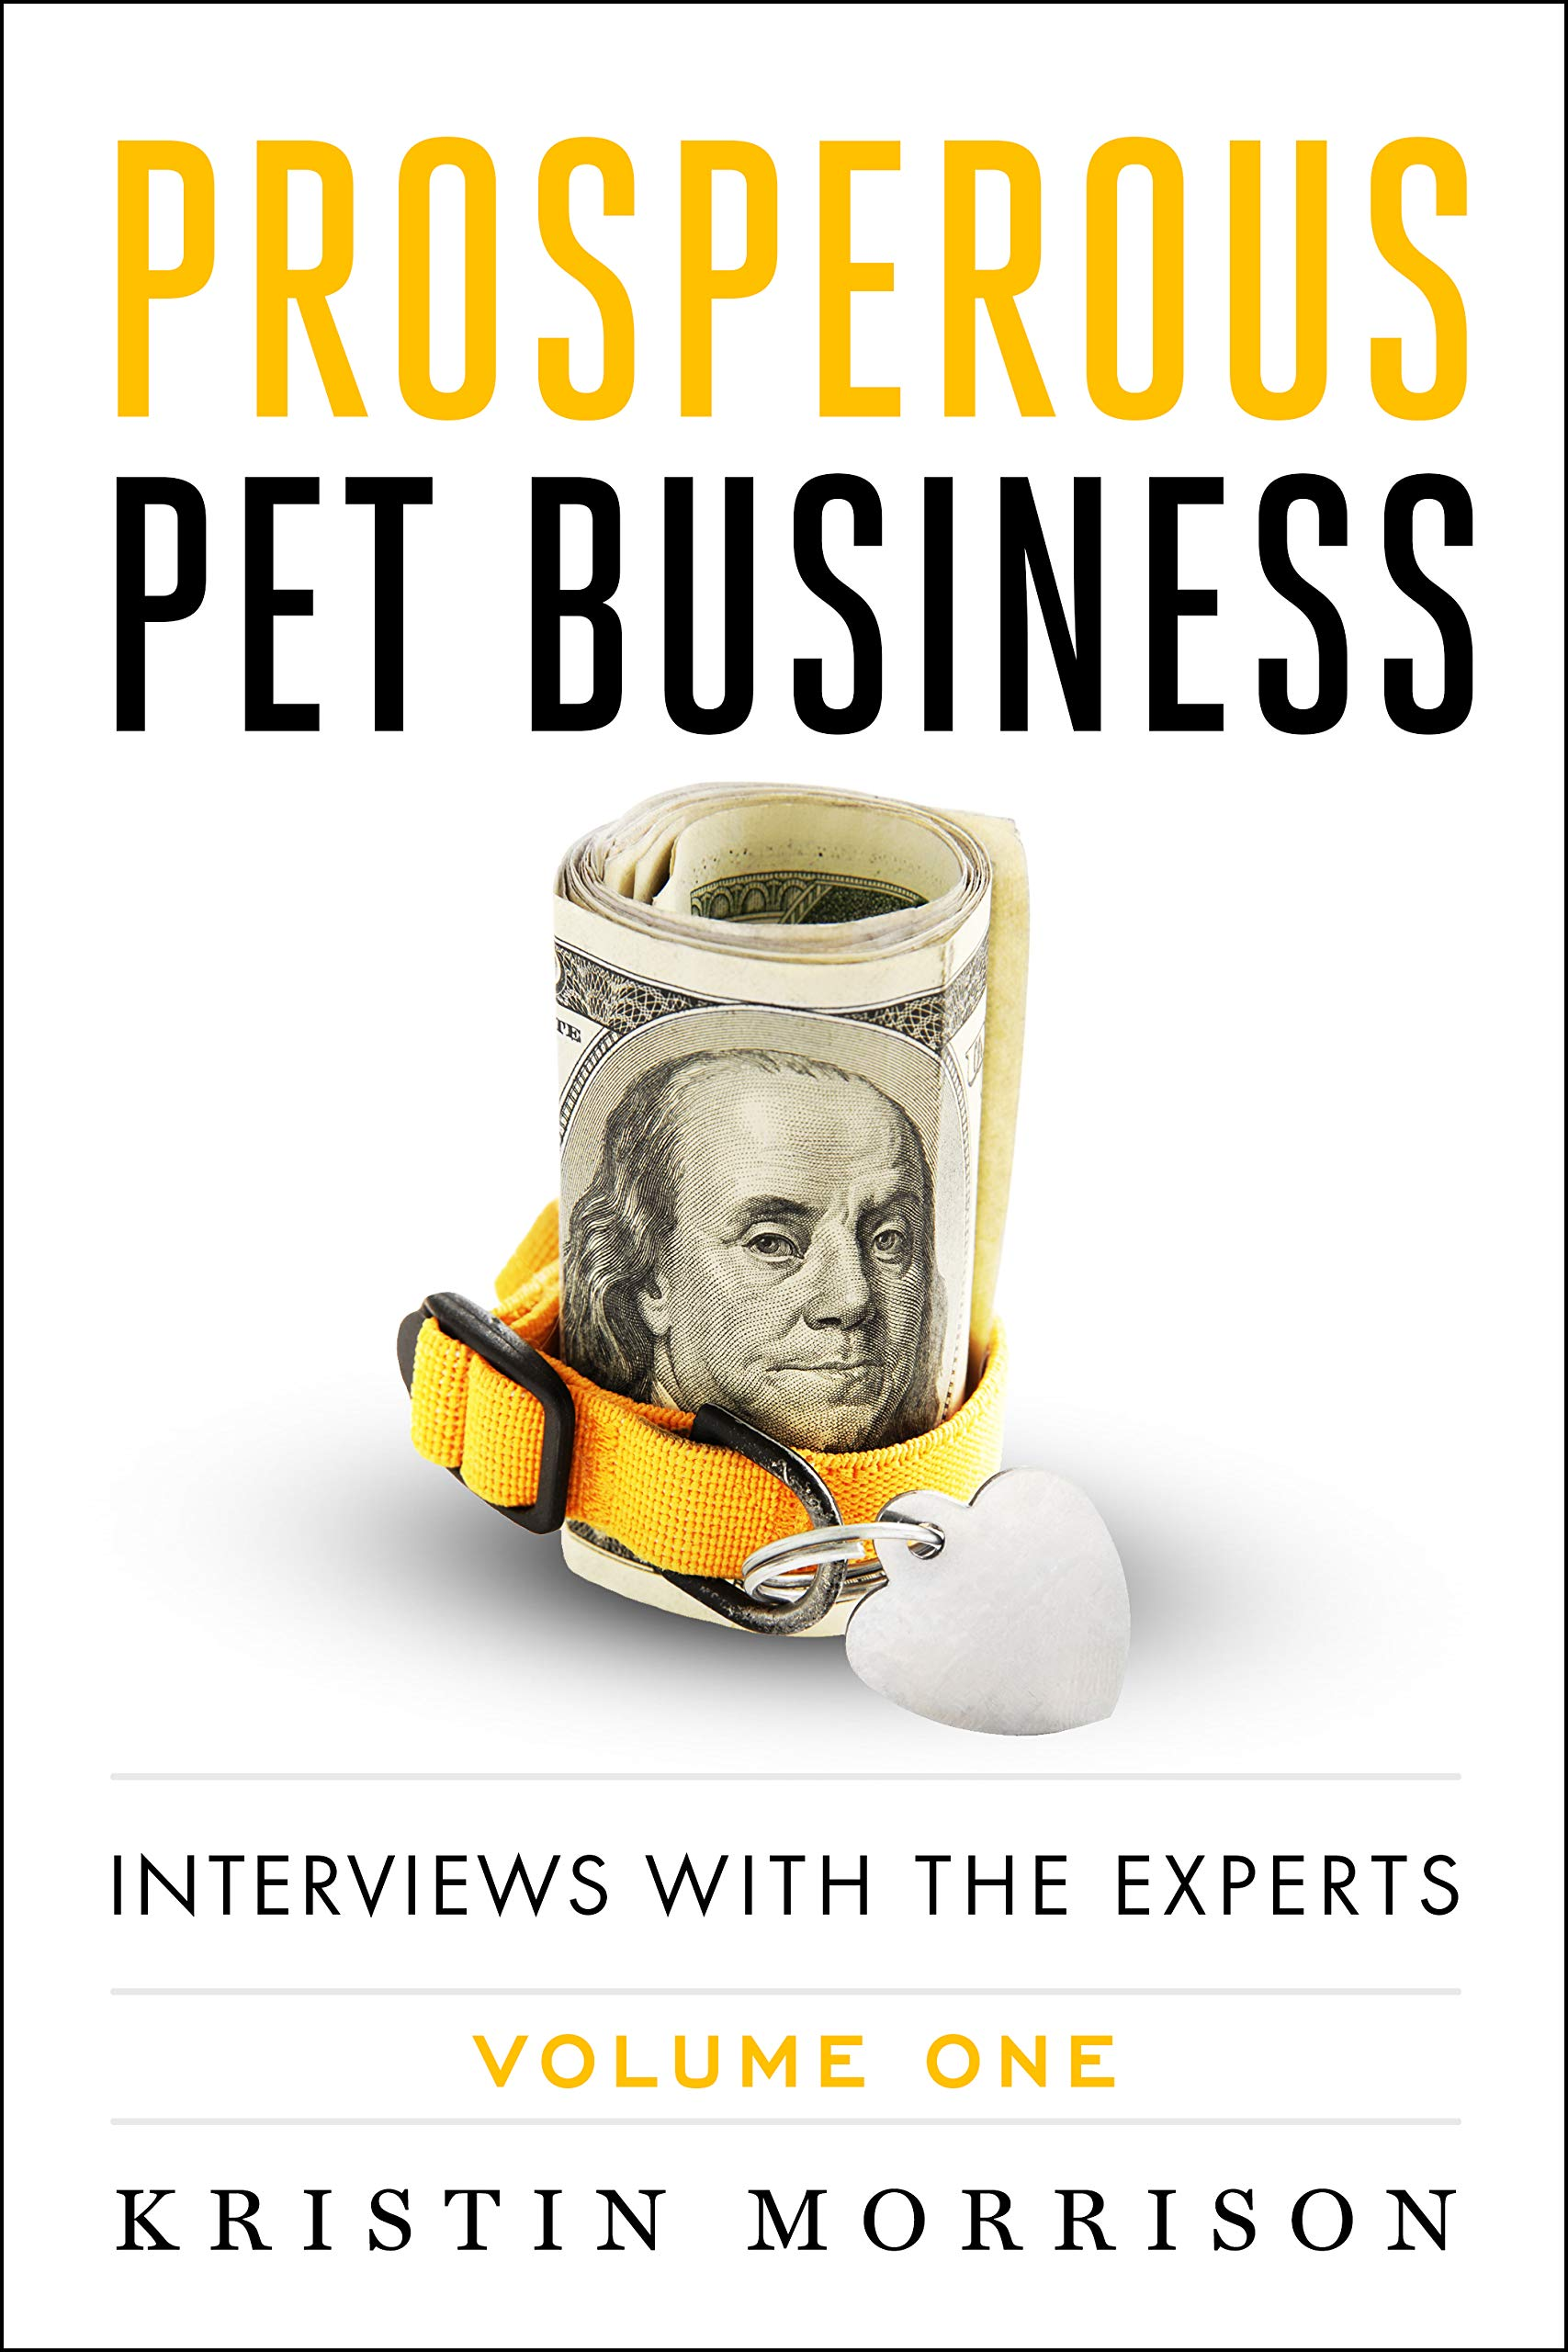 Image OfProsperous Pet Business : Interviews With The Experts - Volume One (English Edition)